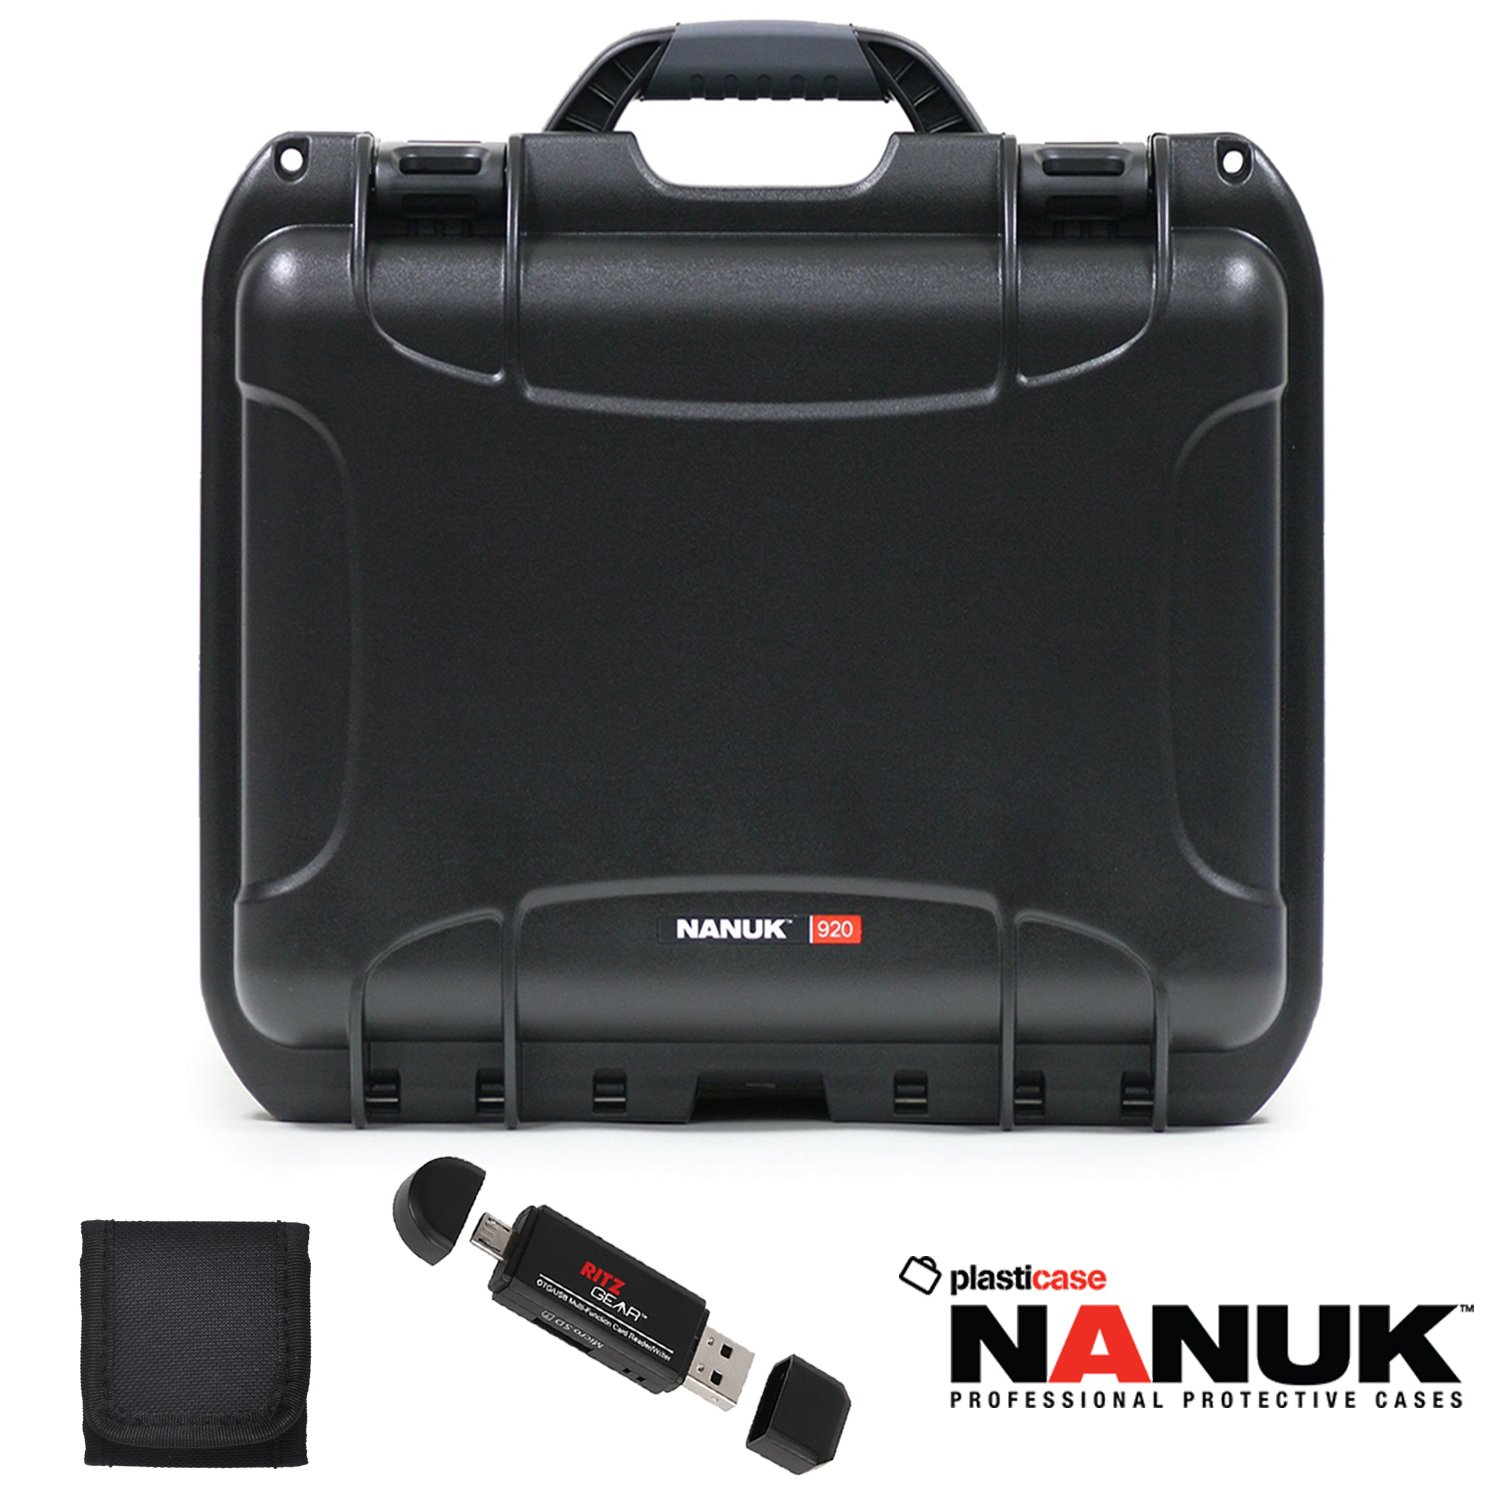 Nanuk 920 Hard Case with Cubed Foam, Polaroid Memory Card Wallet and Ritz Gear Card Reader / Writer